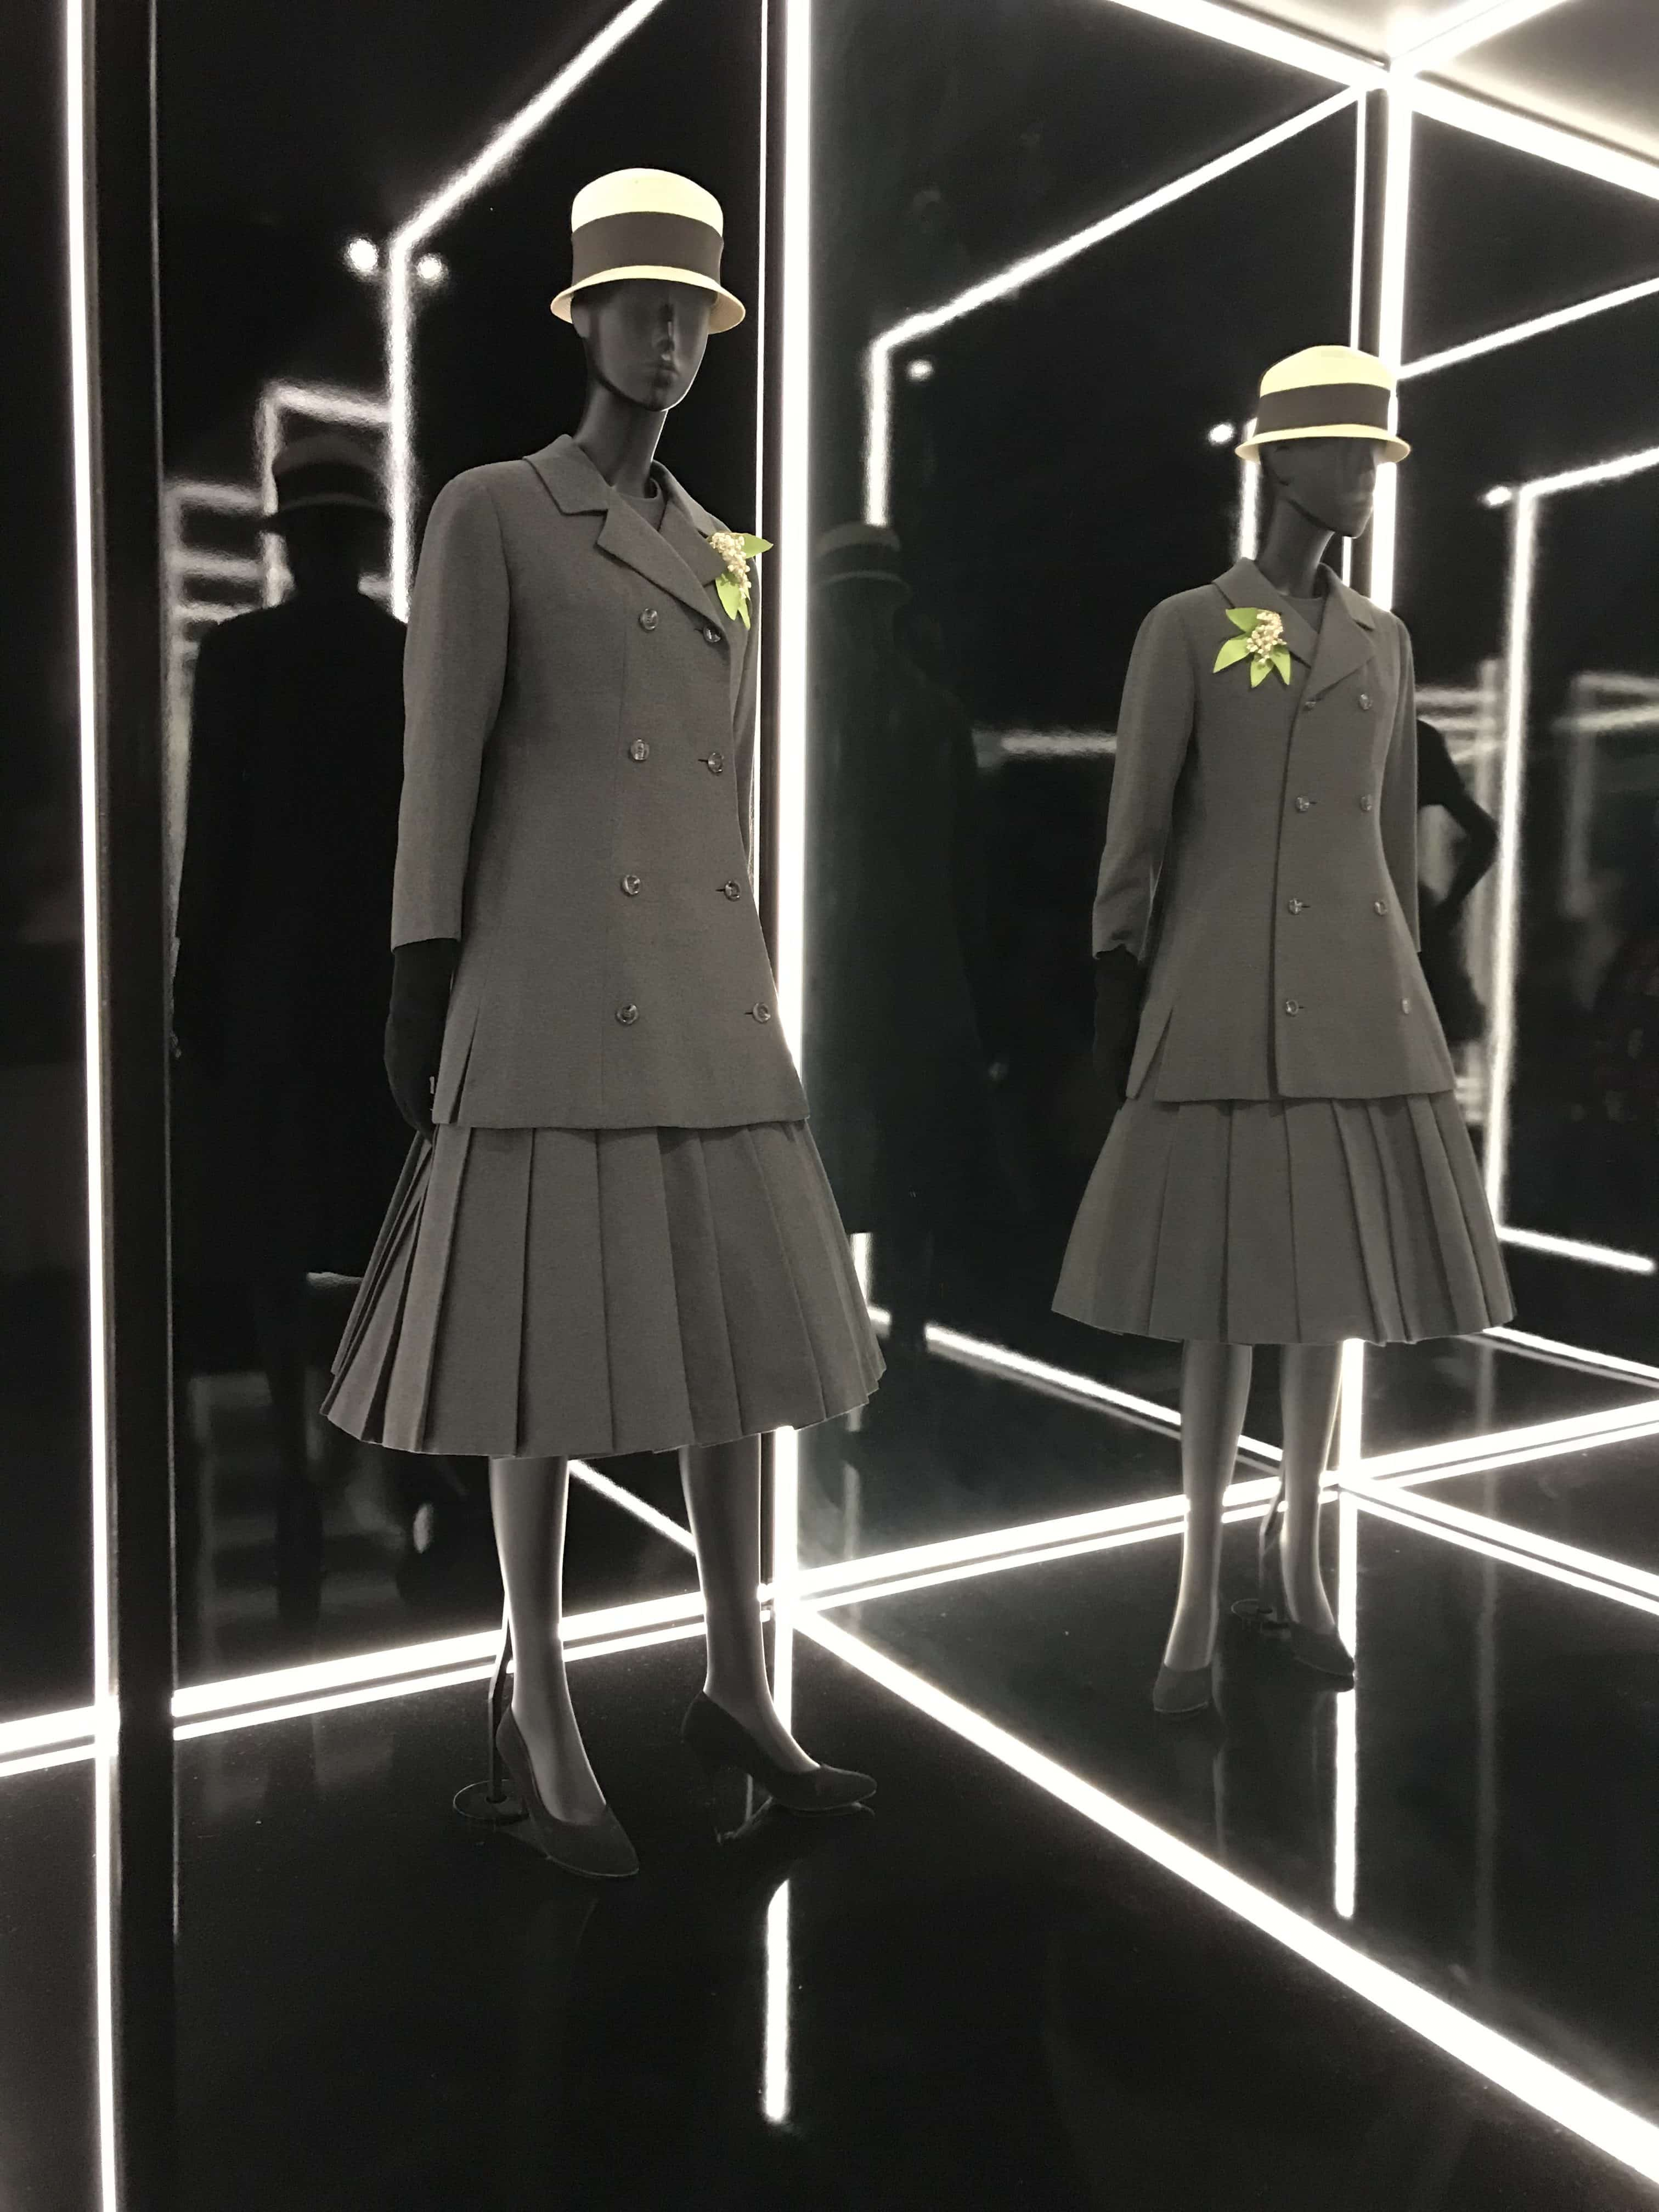 The Christian Dior Designer of Dreams Exhibition at the V&A. The A Suit by Dior.